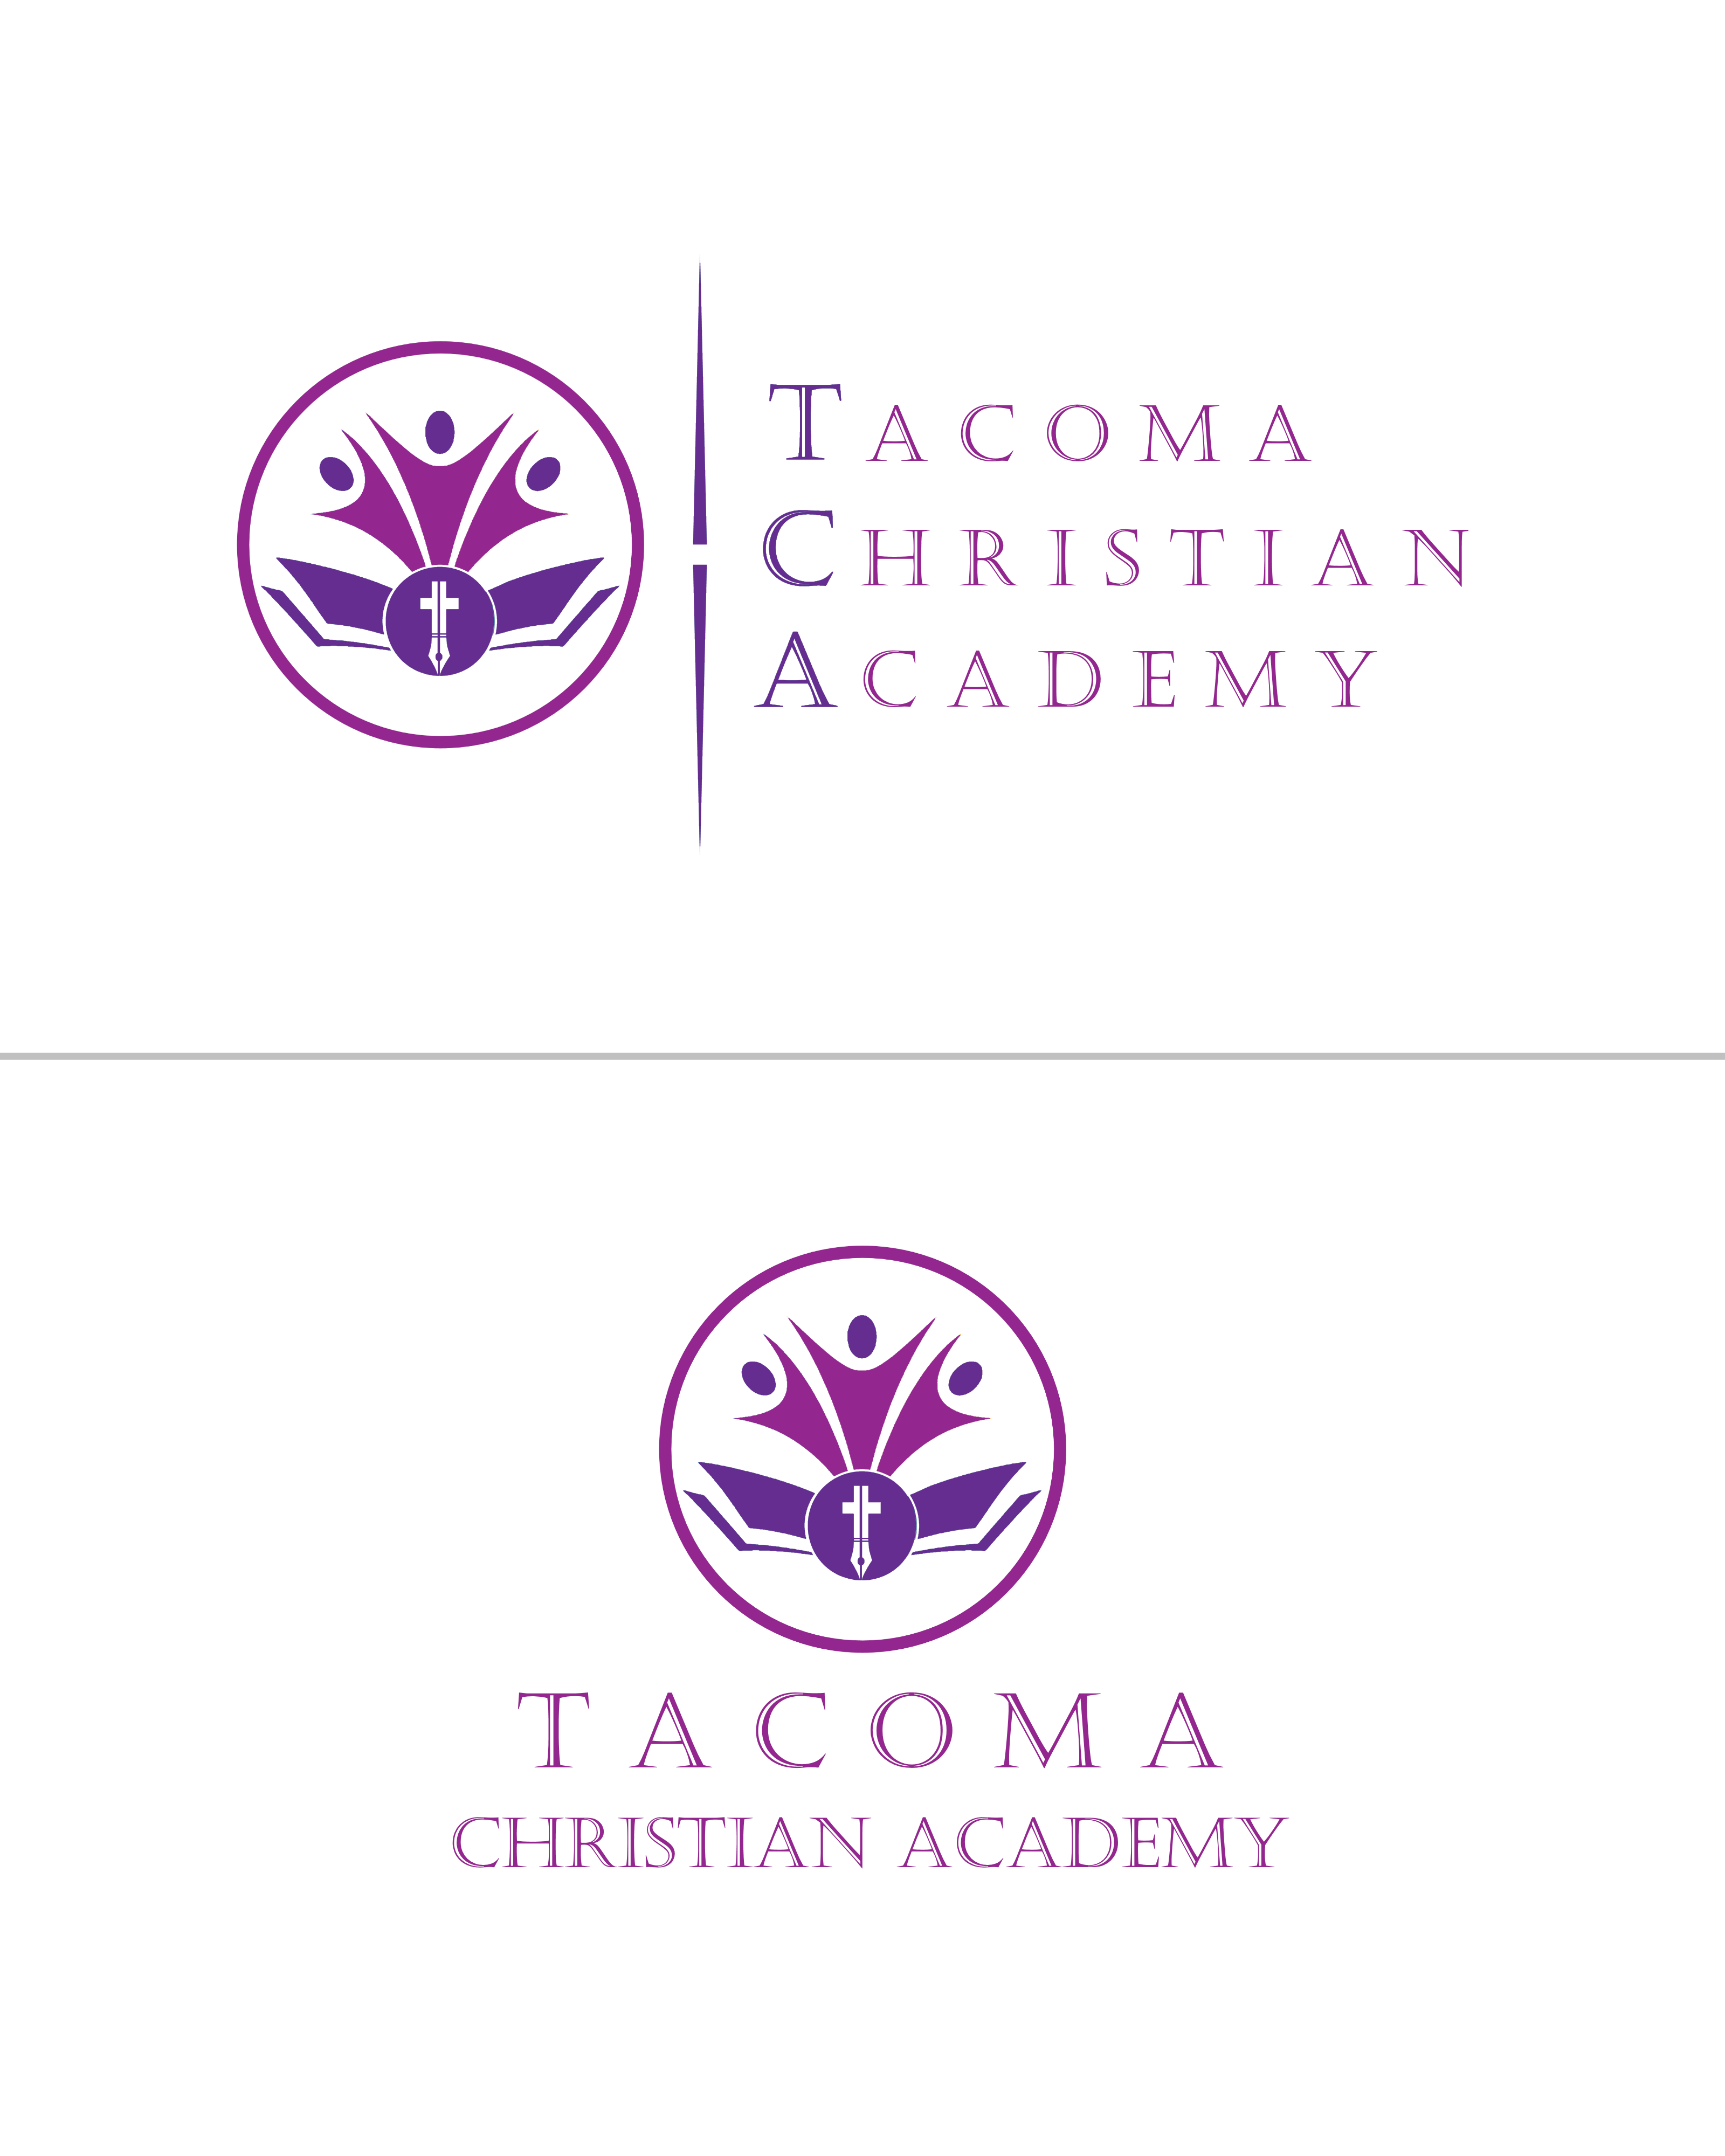 Logo Design by Roberto Bassi - Entry No. 55 in the Logo Design Contest Imaginative Logo Design for Tacoma Christian Academy.